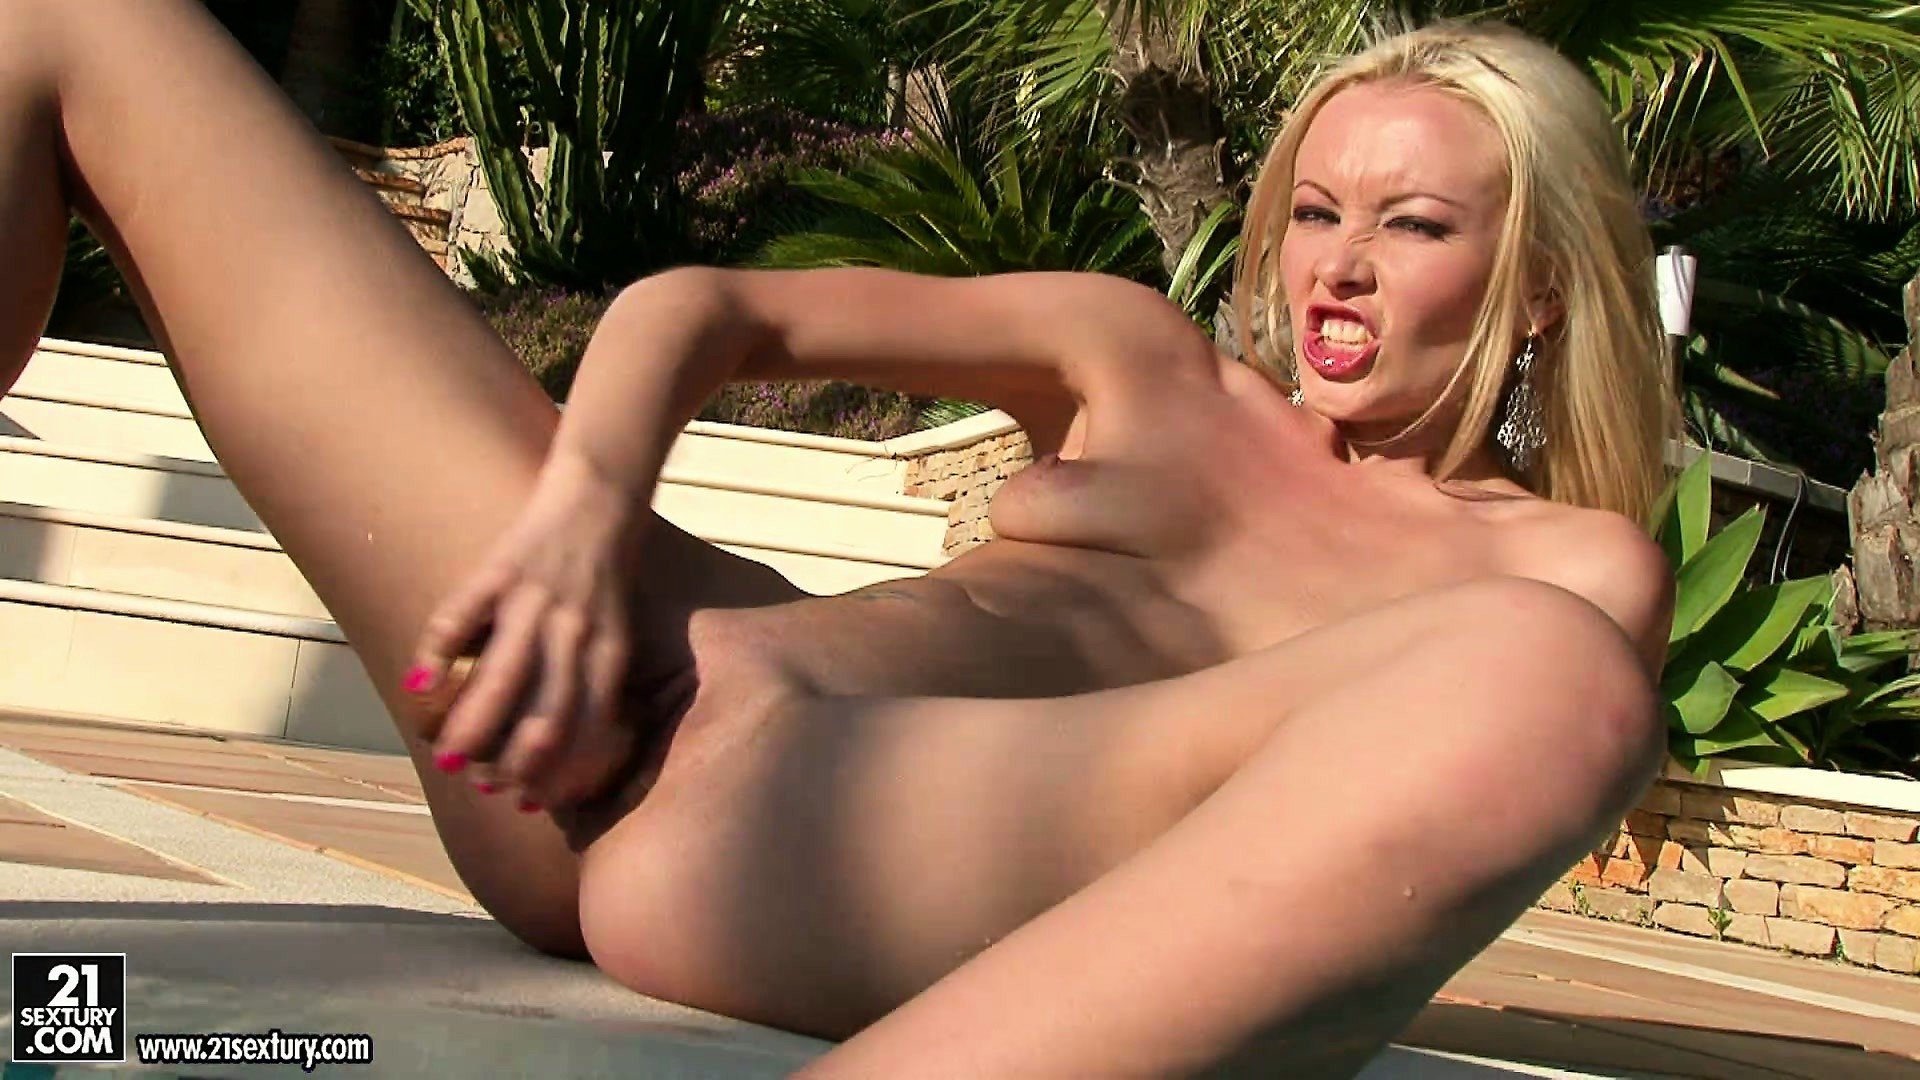 Porn Tube of Sweet Blond First-timer And Her Impromptu Sex Toys In A Hot Solo Video